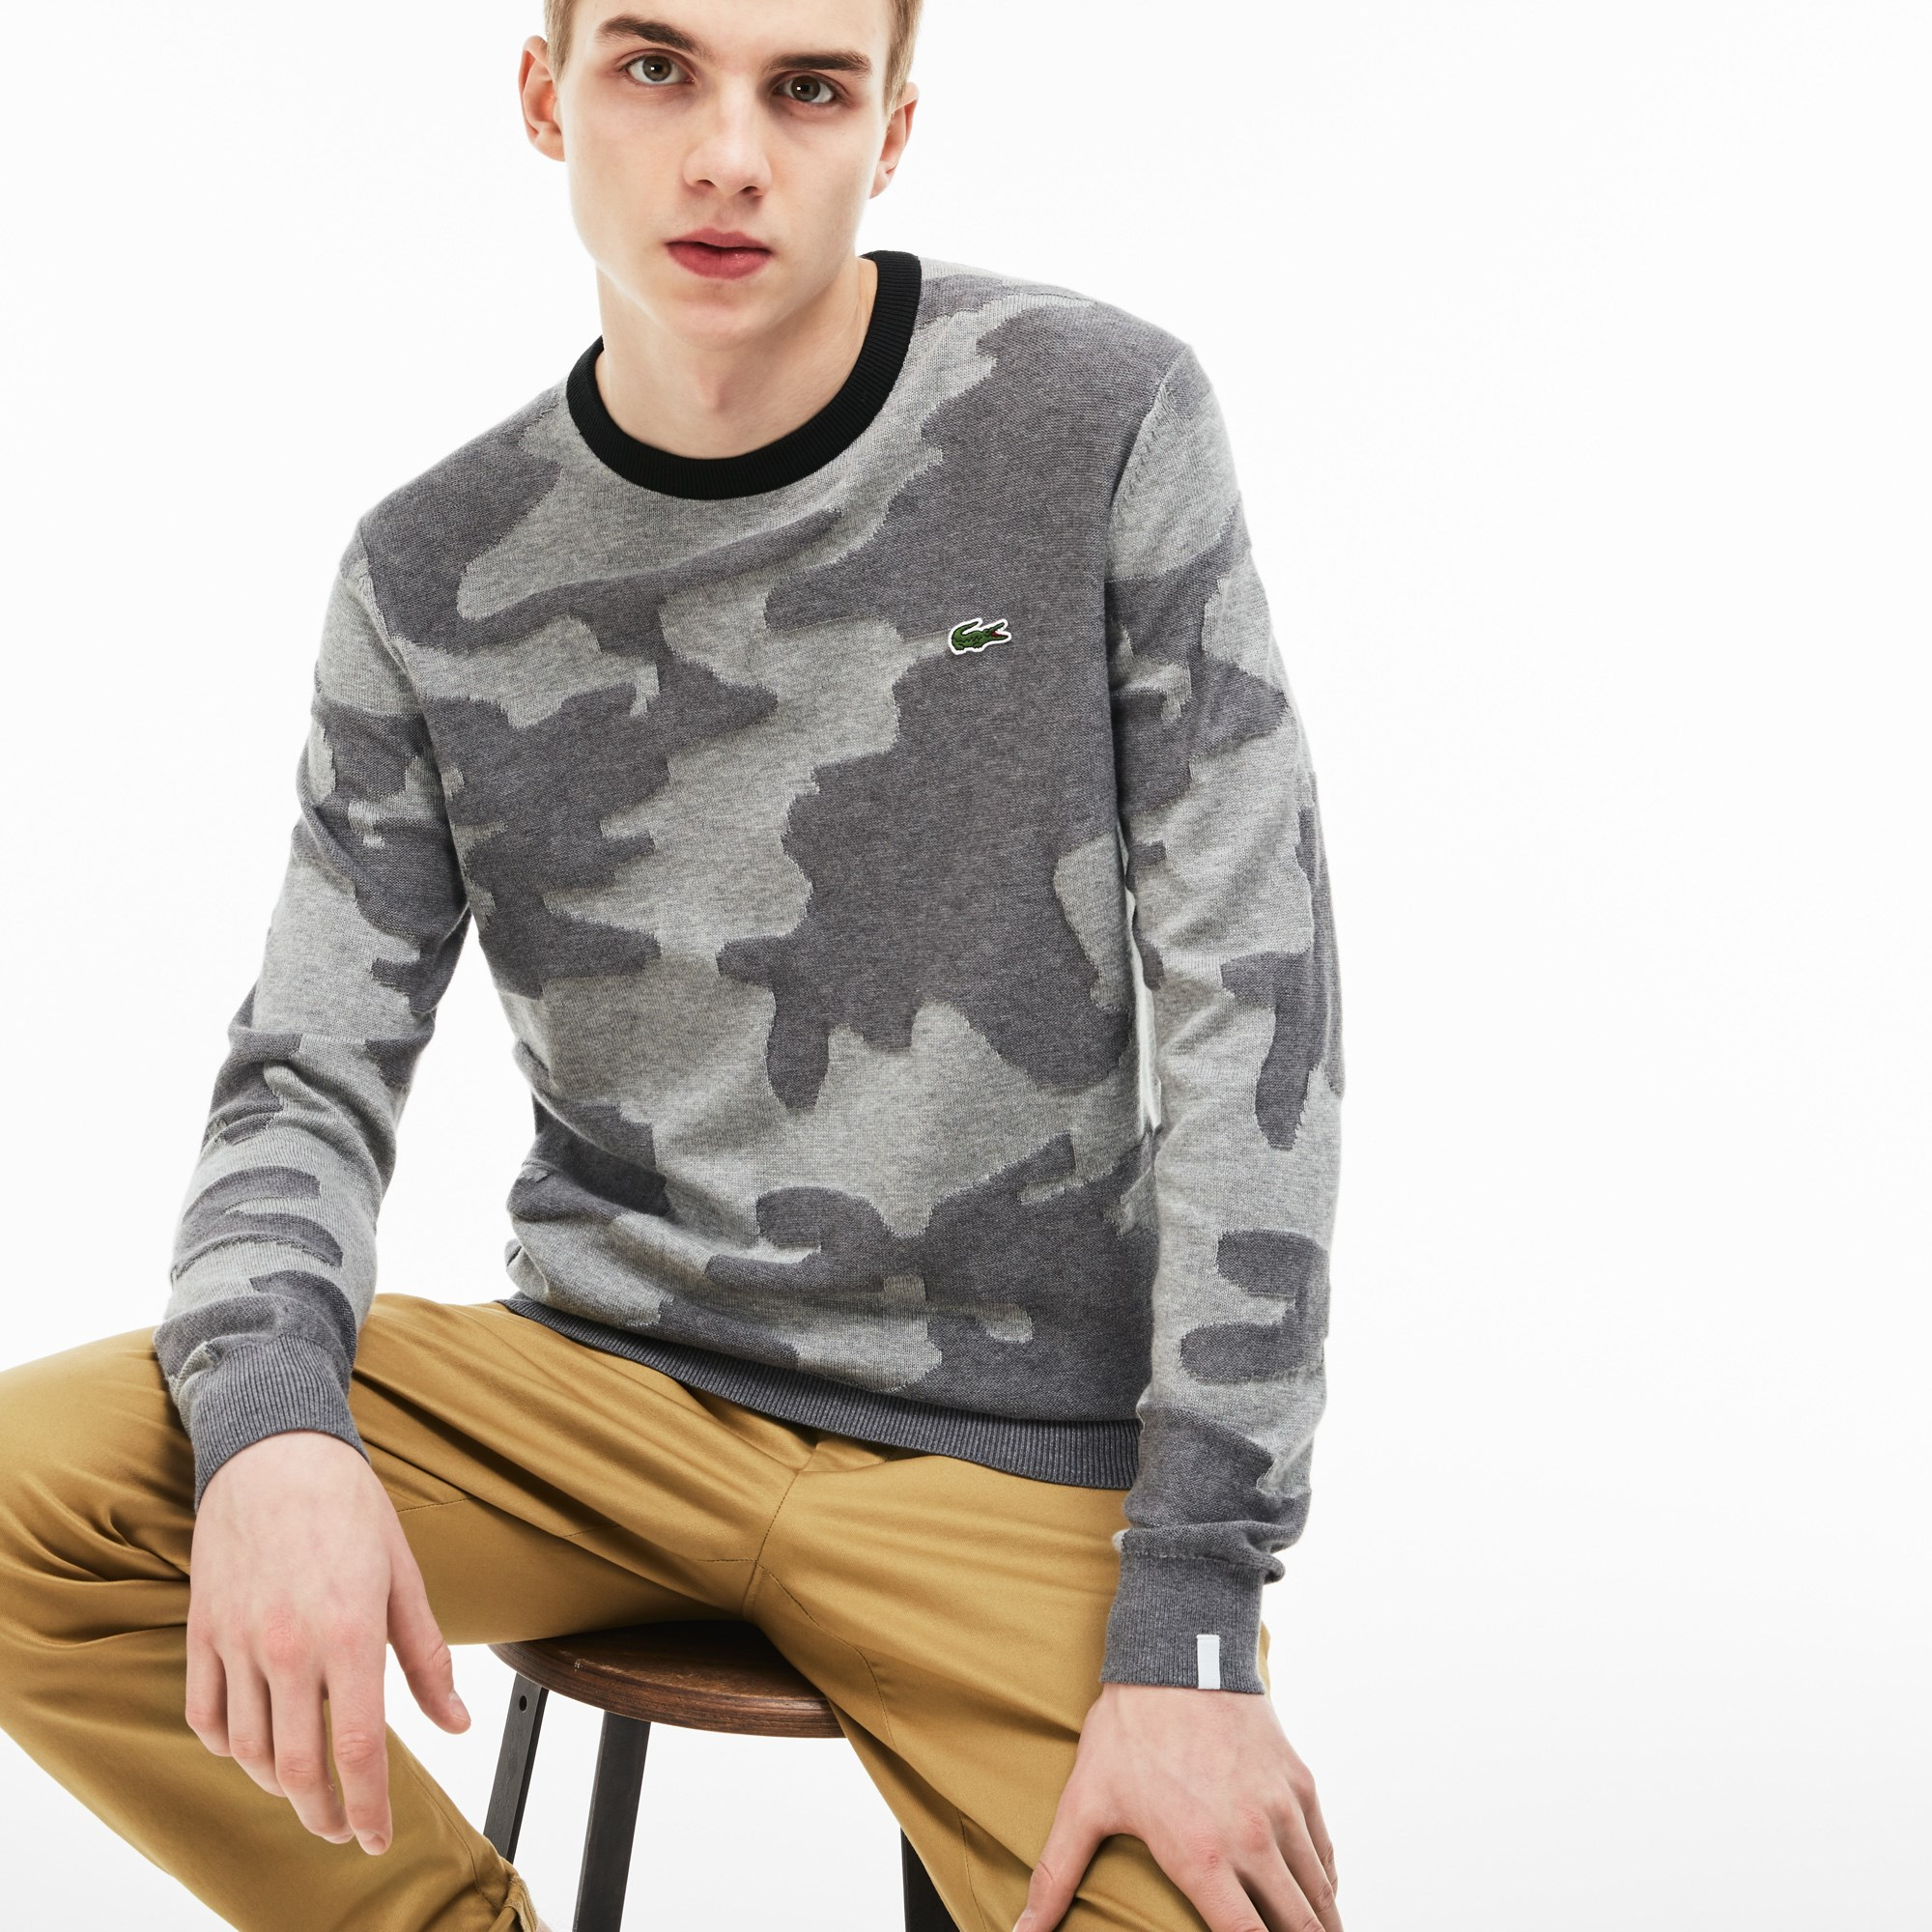 Men's Lacoste LIVE Crew Neck Camouflage Print Jacquard Sweater